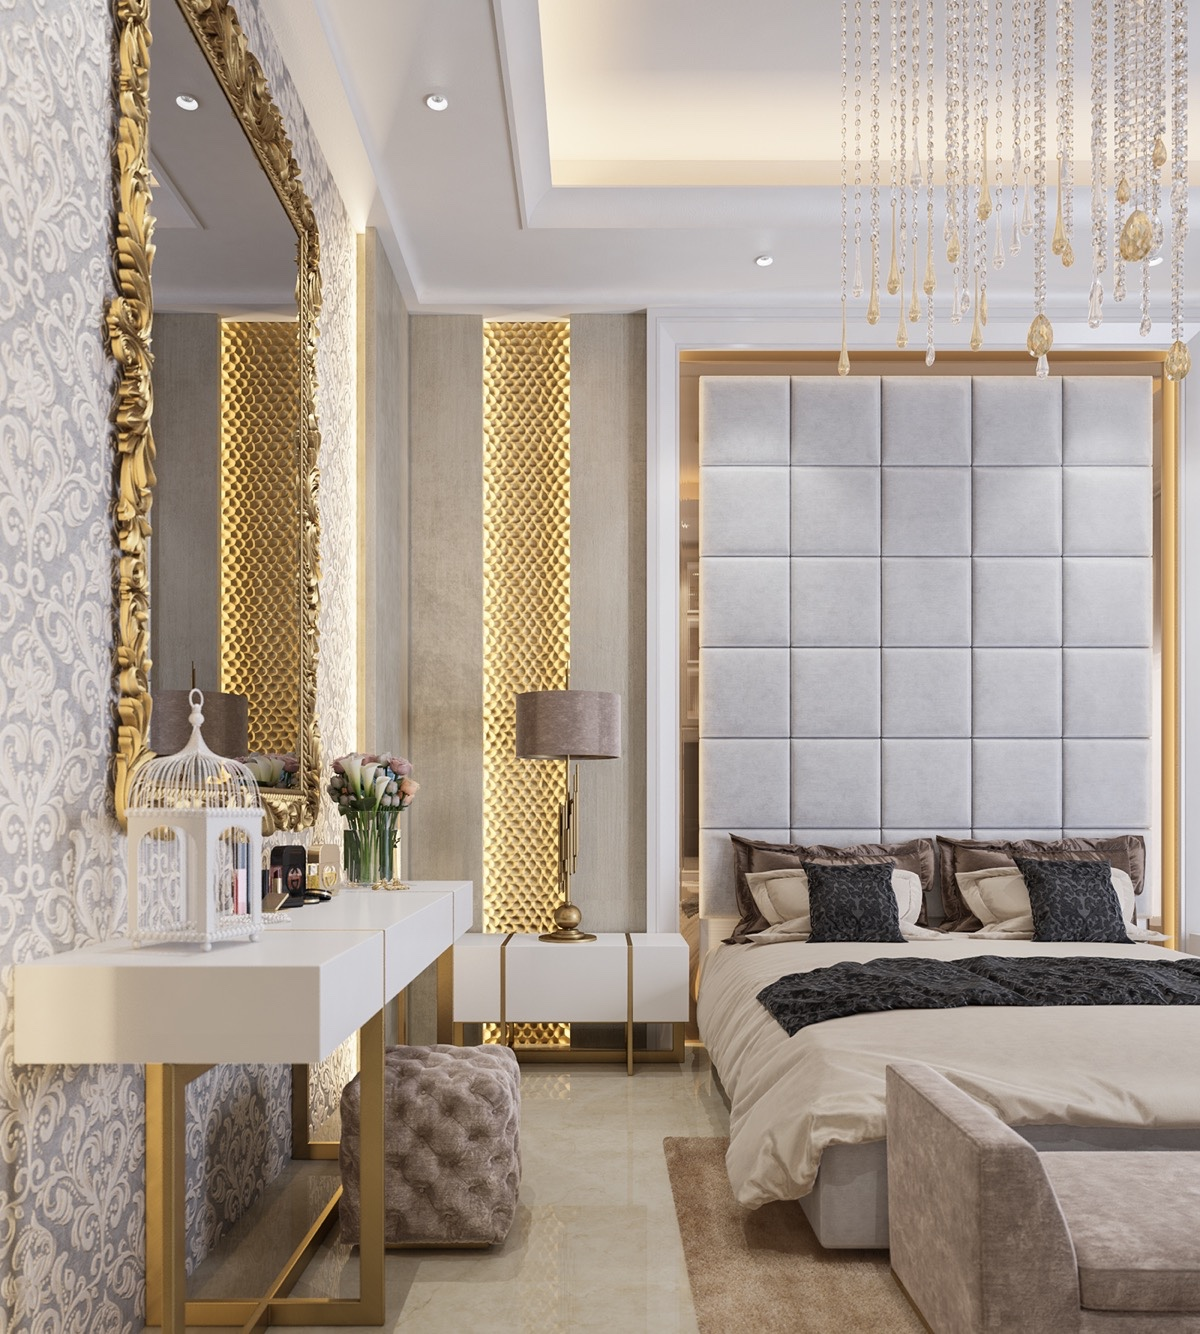 Luxury Master Suite Ultimate Master Suite - 6 master suits to inspire you